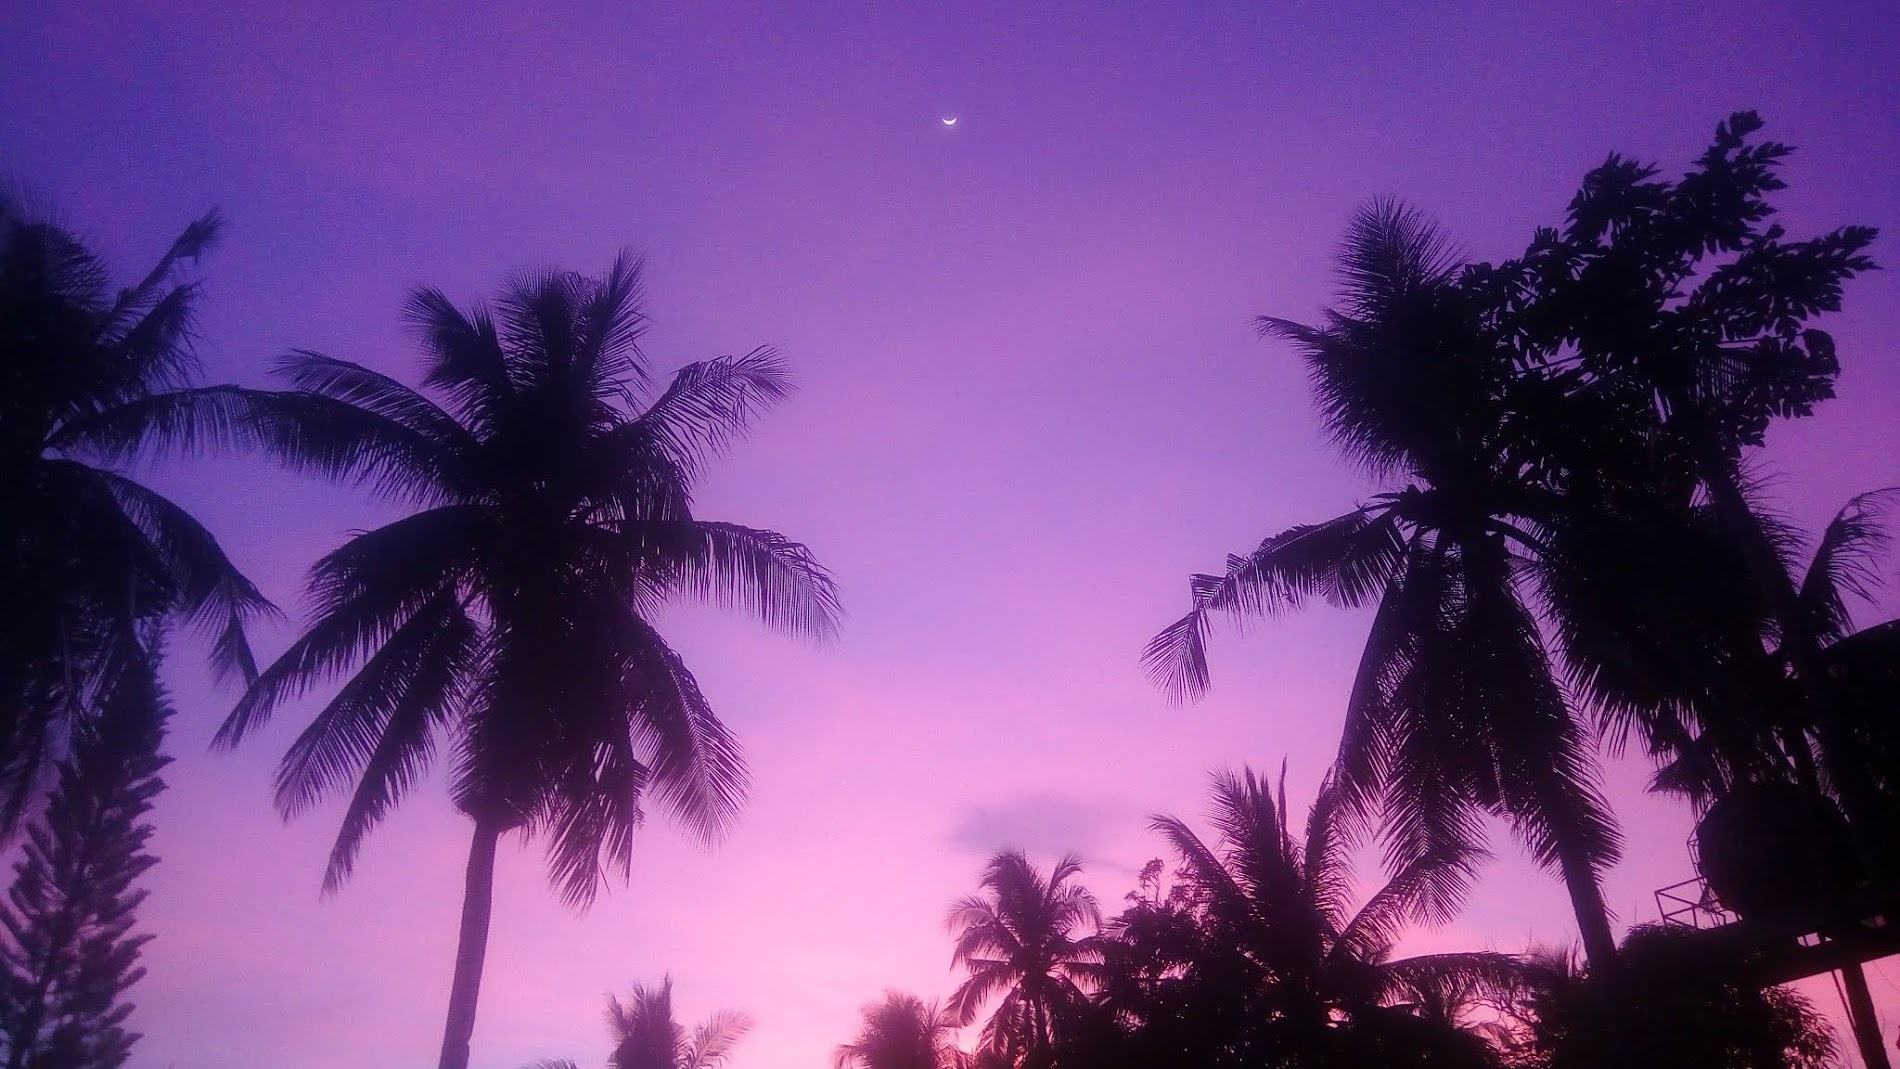 Palm Tress with purple background